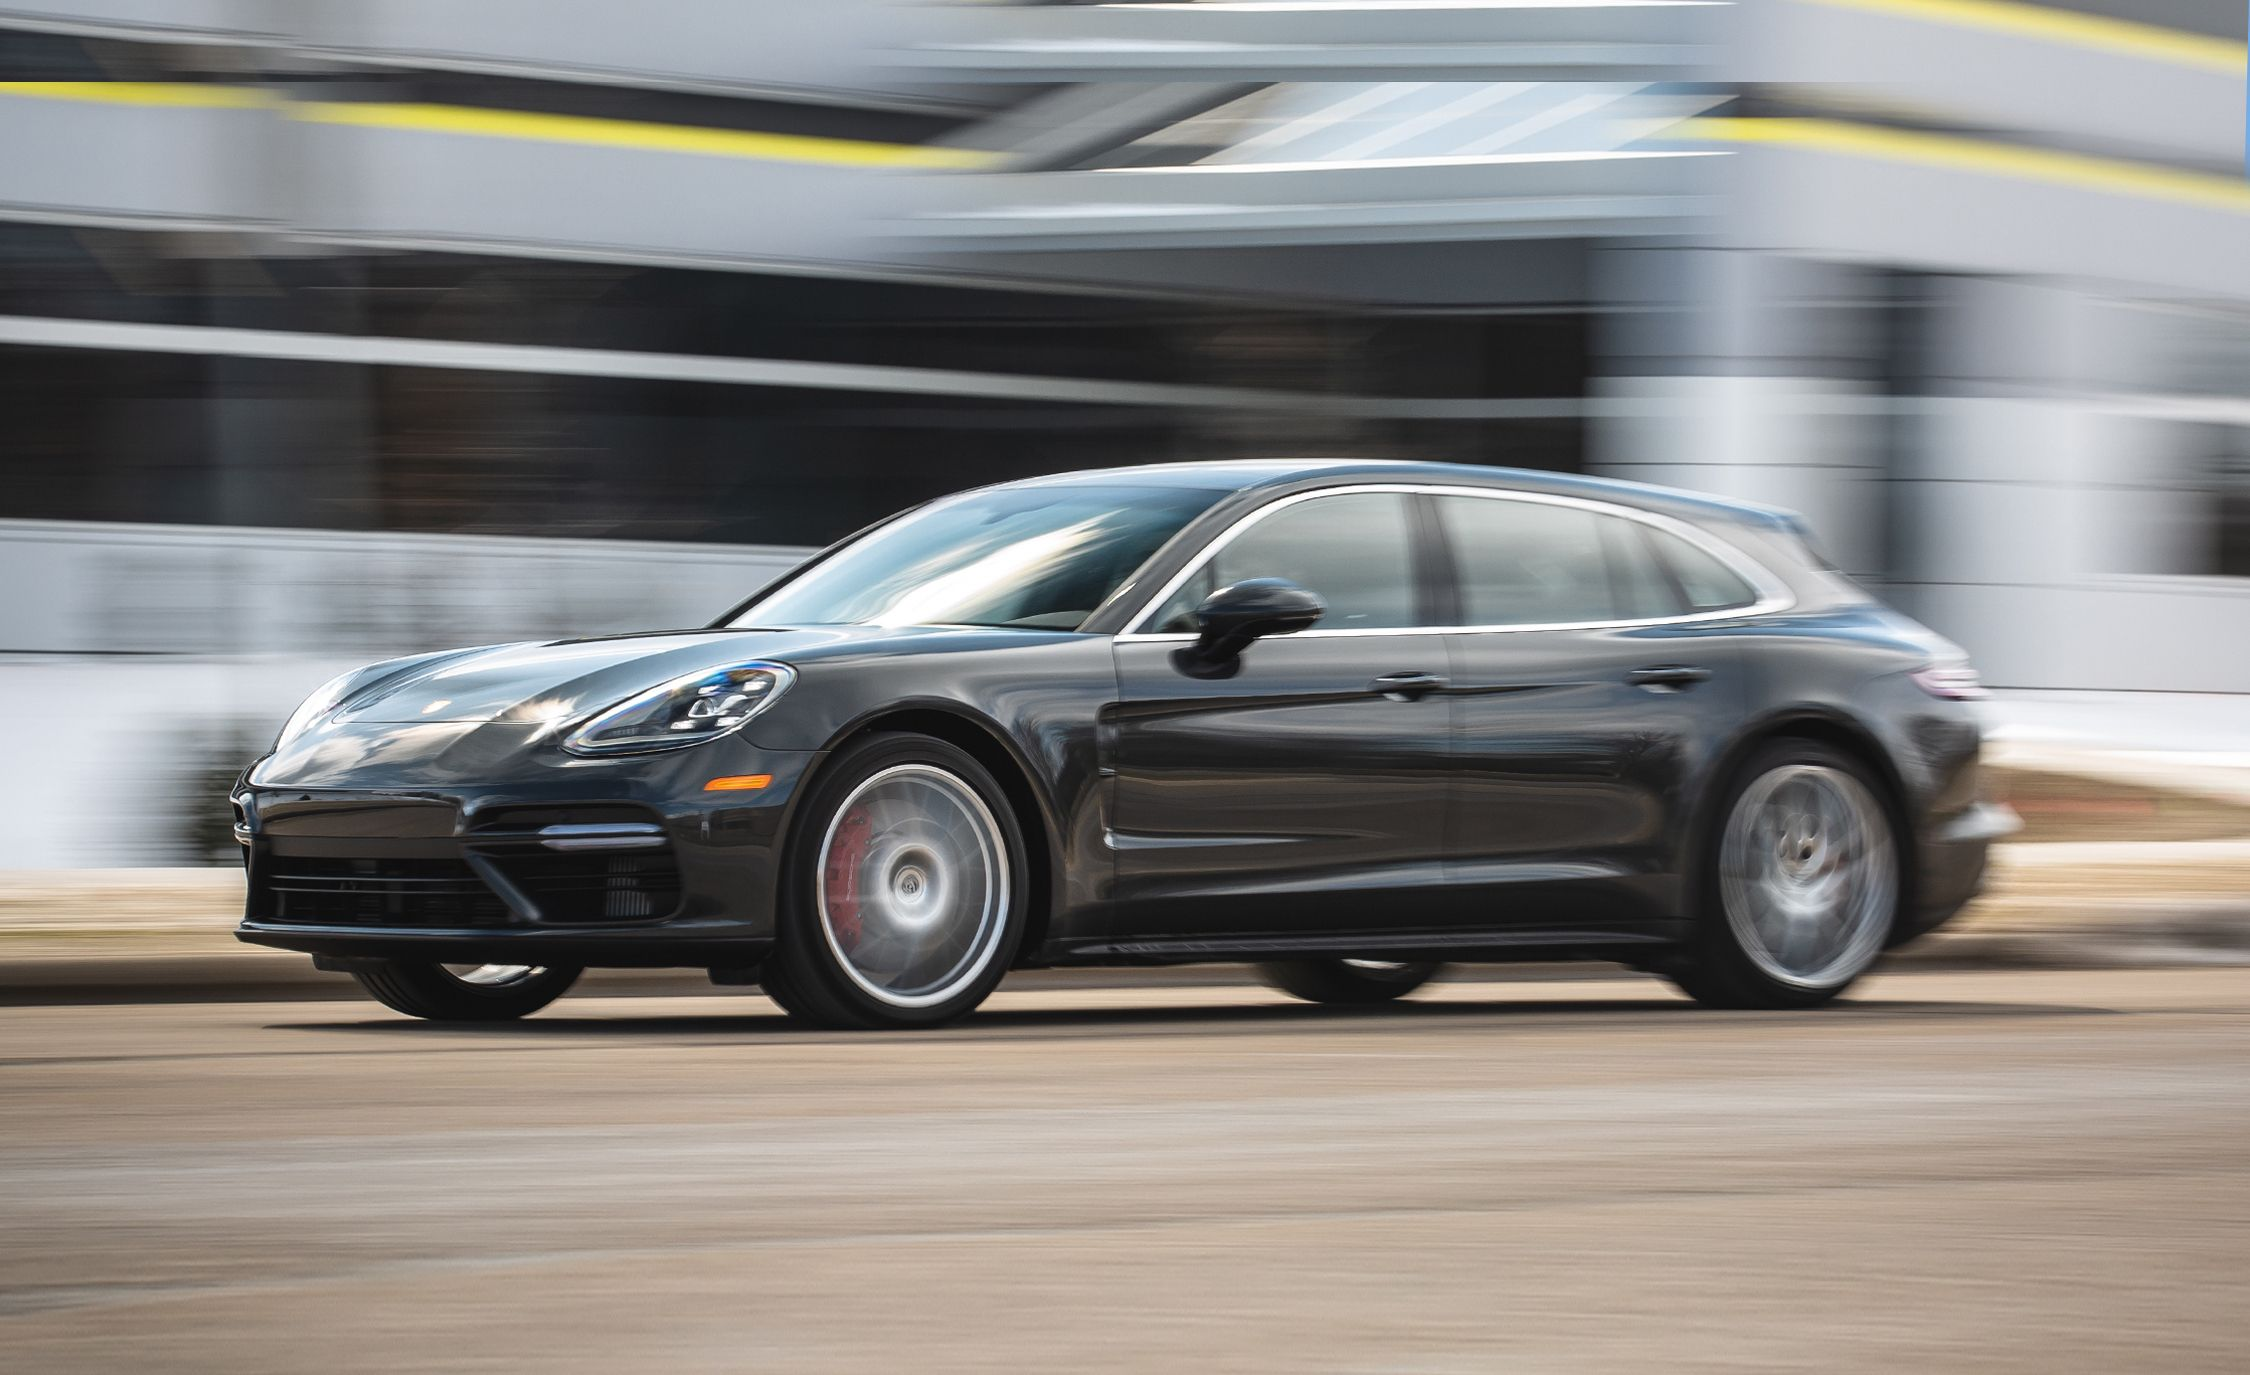 2019 Porsche Panamera Sport Turismo Review, Pricing, and